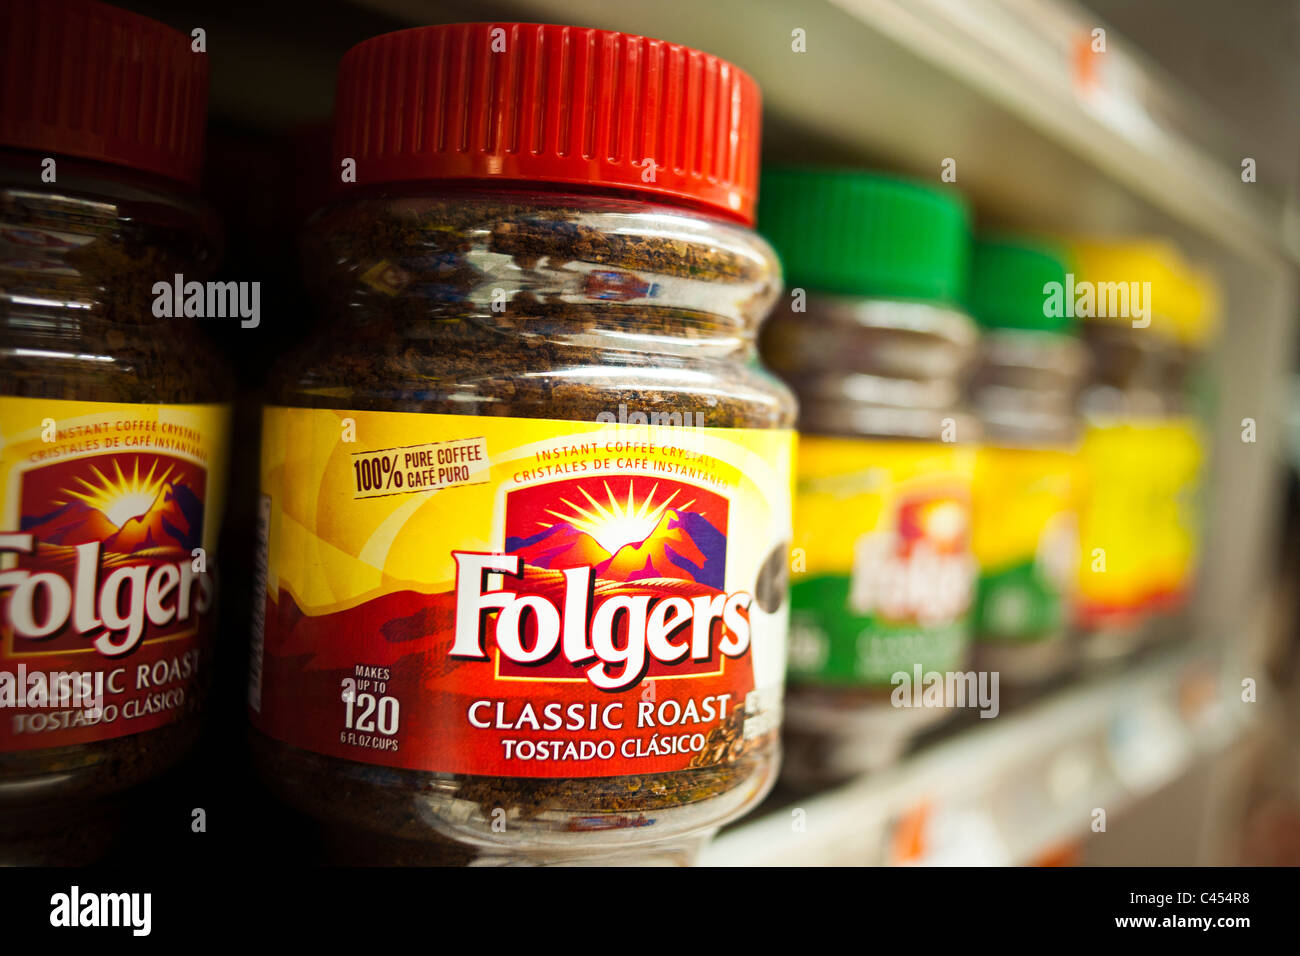 folgers coffee stock photos folgers coffee stock images alamy a display of folgers coffee on a supermarket shelf in new york stock image